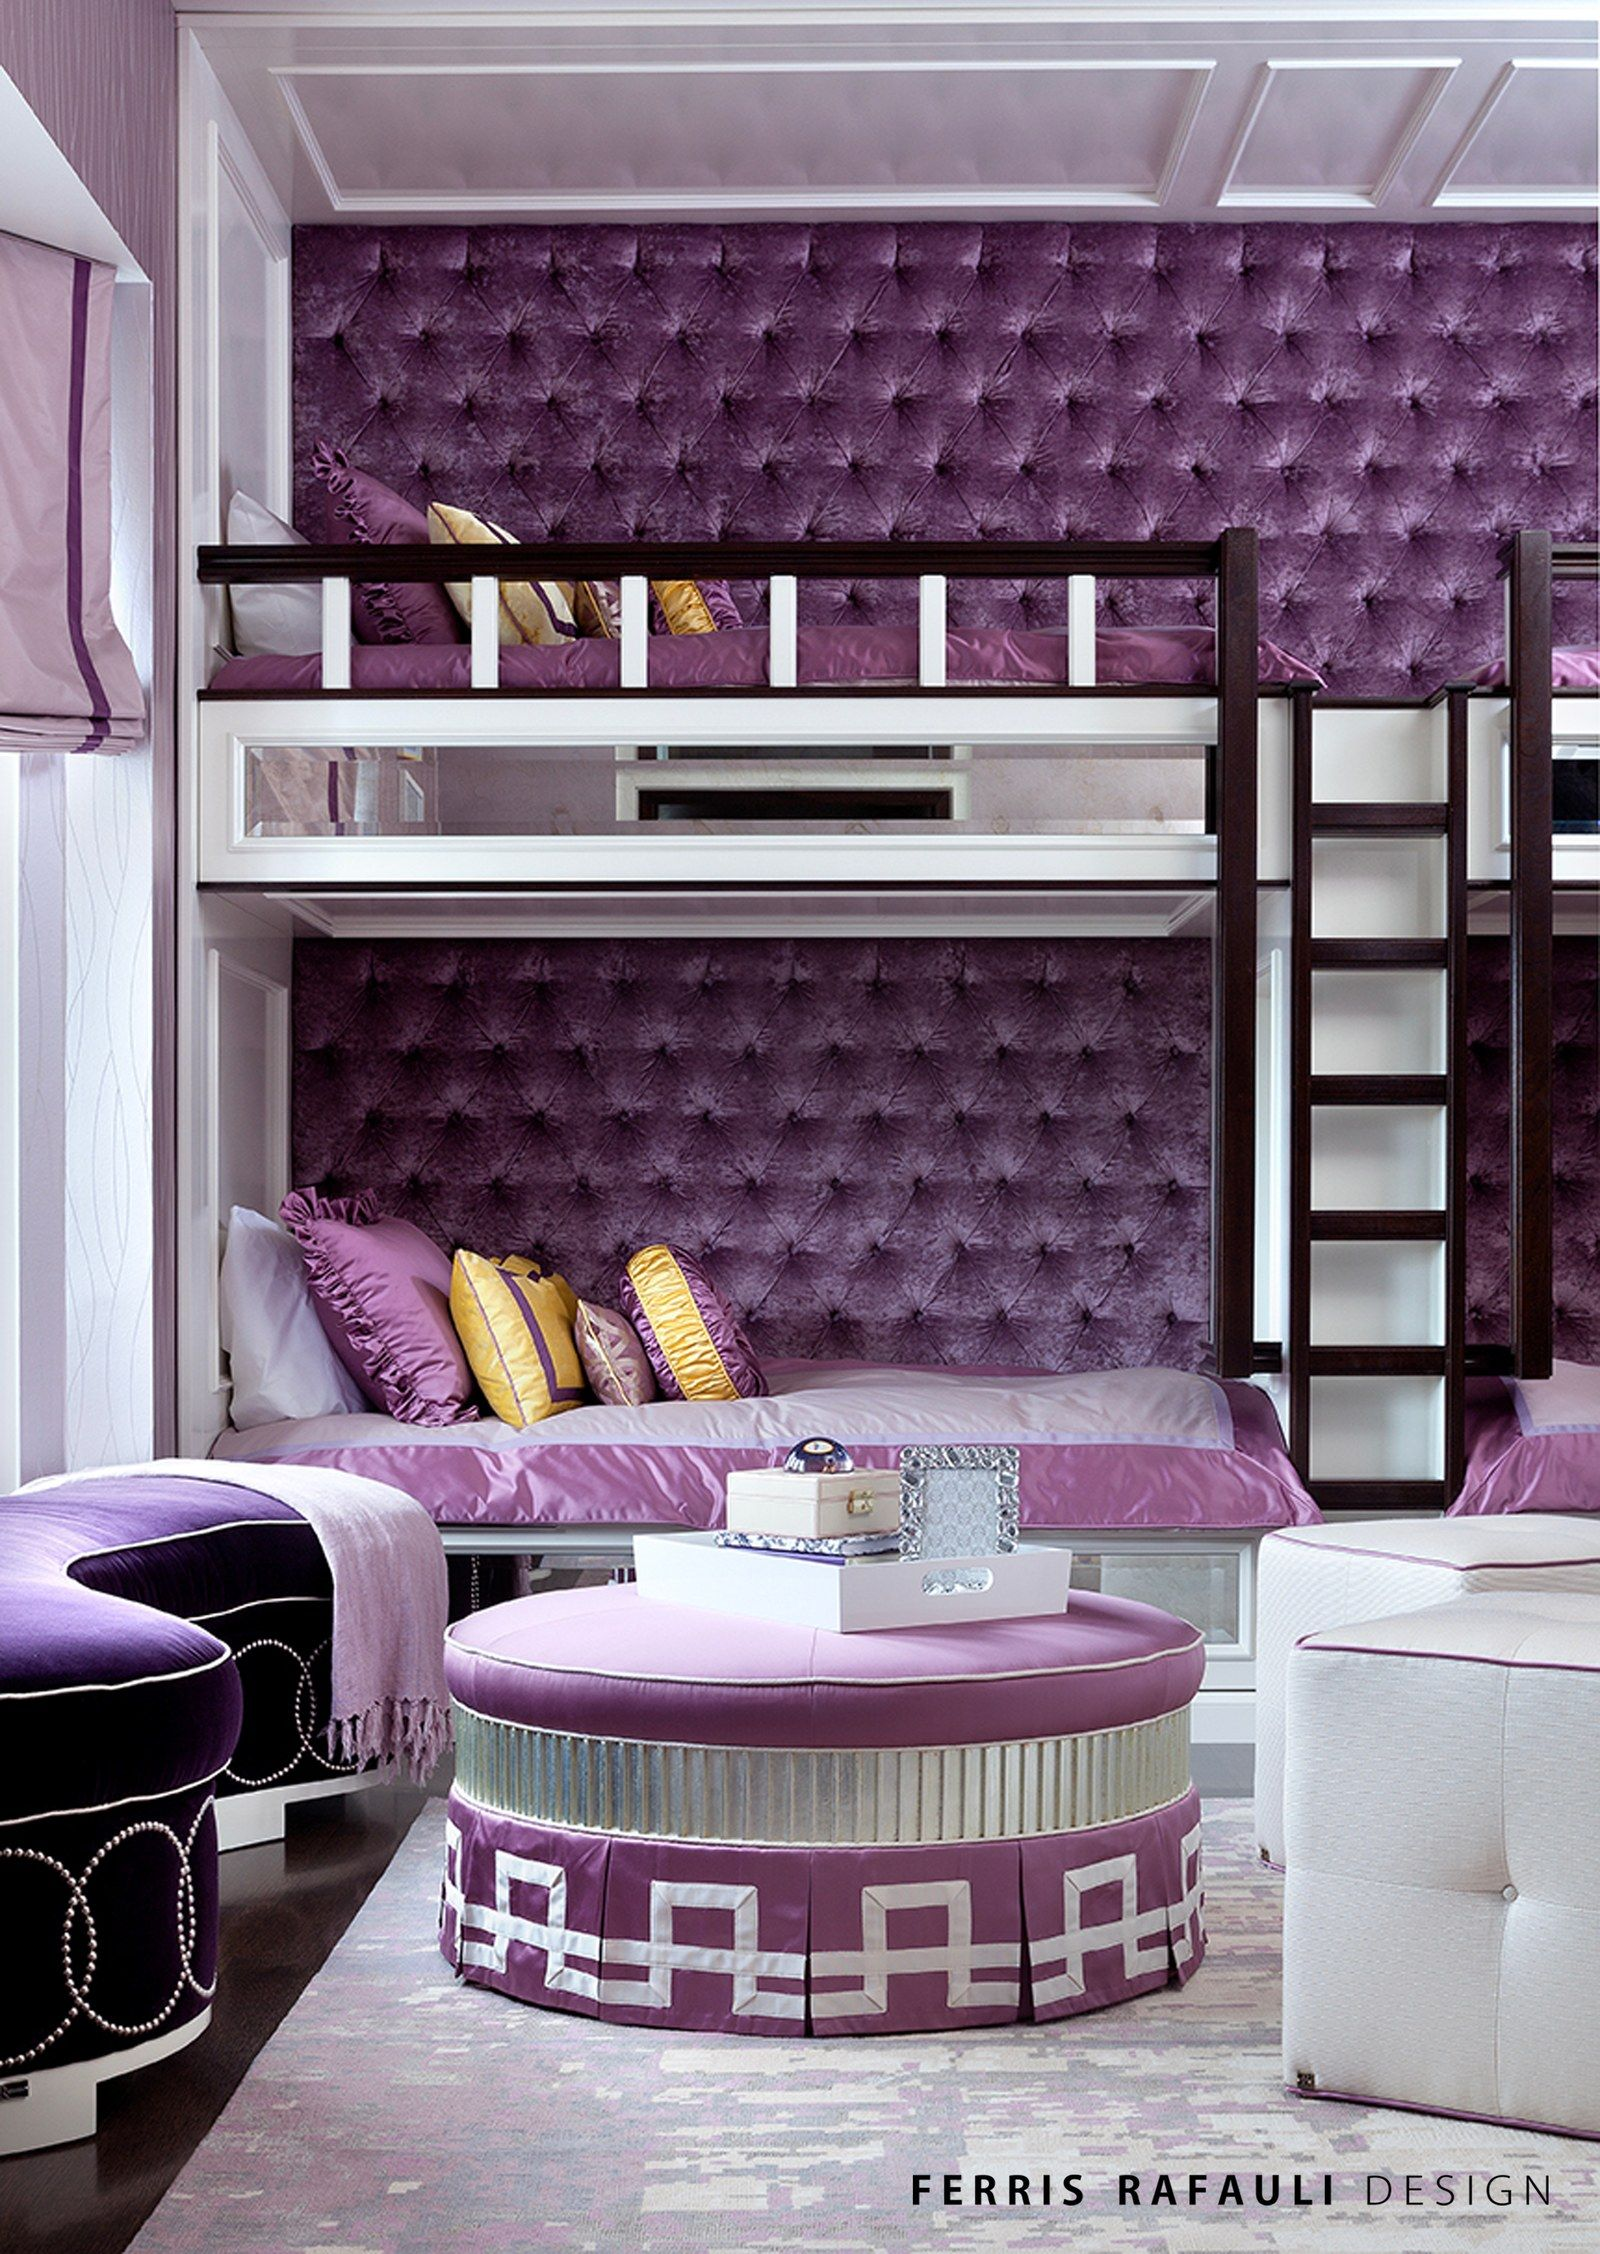 Luxury Bedroom Design Architecture By Ferris Rafauli Bedroom